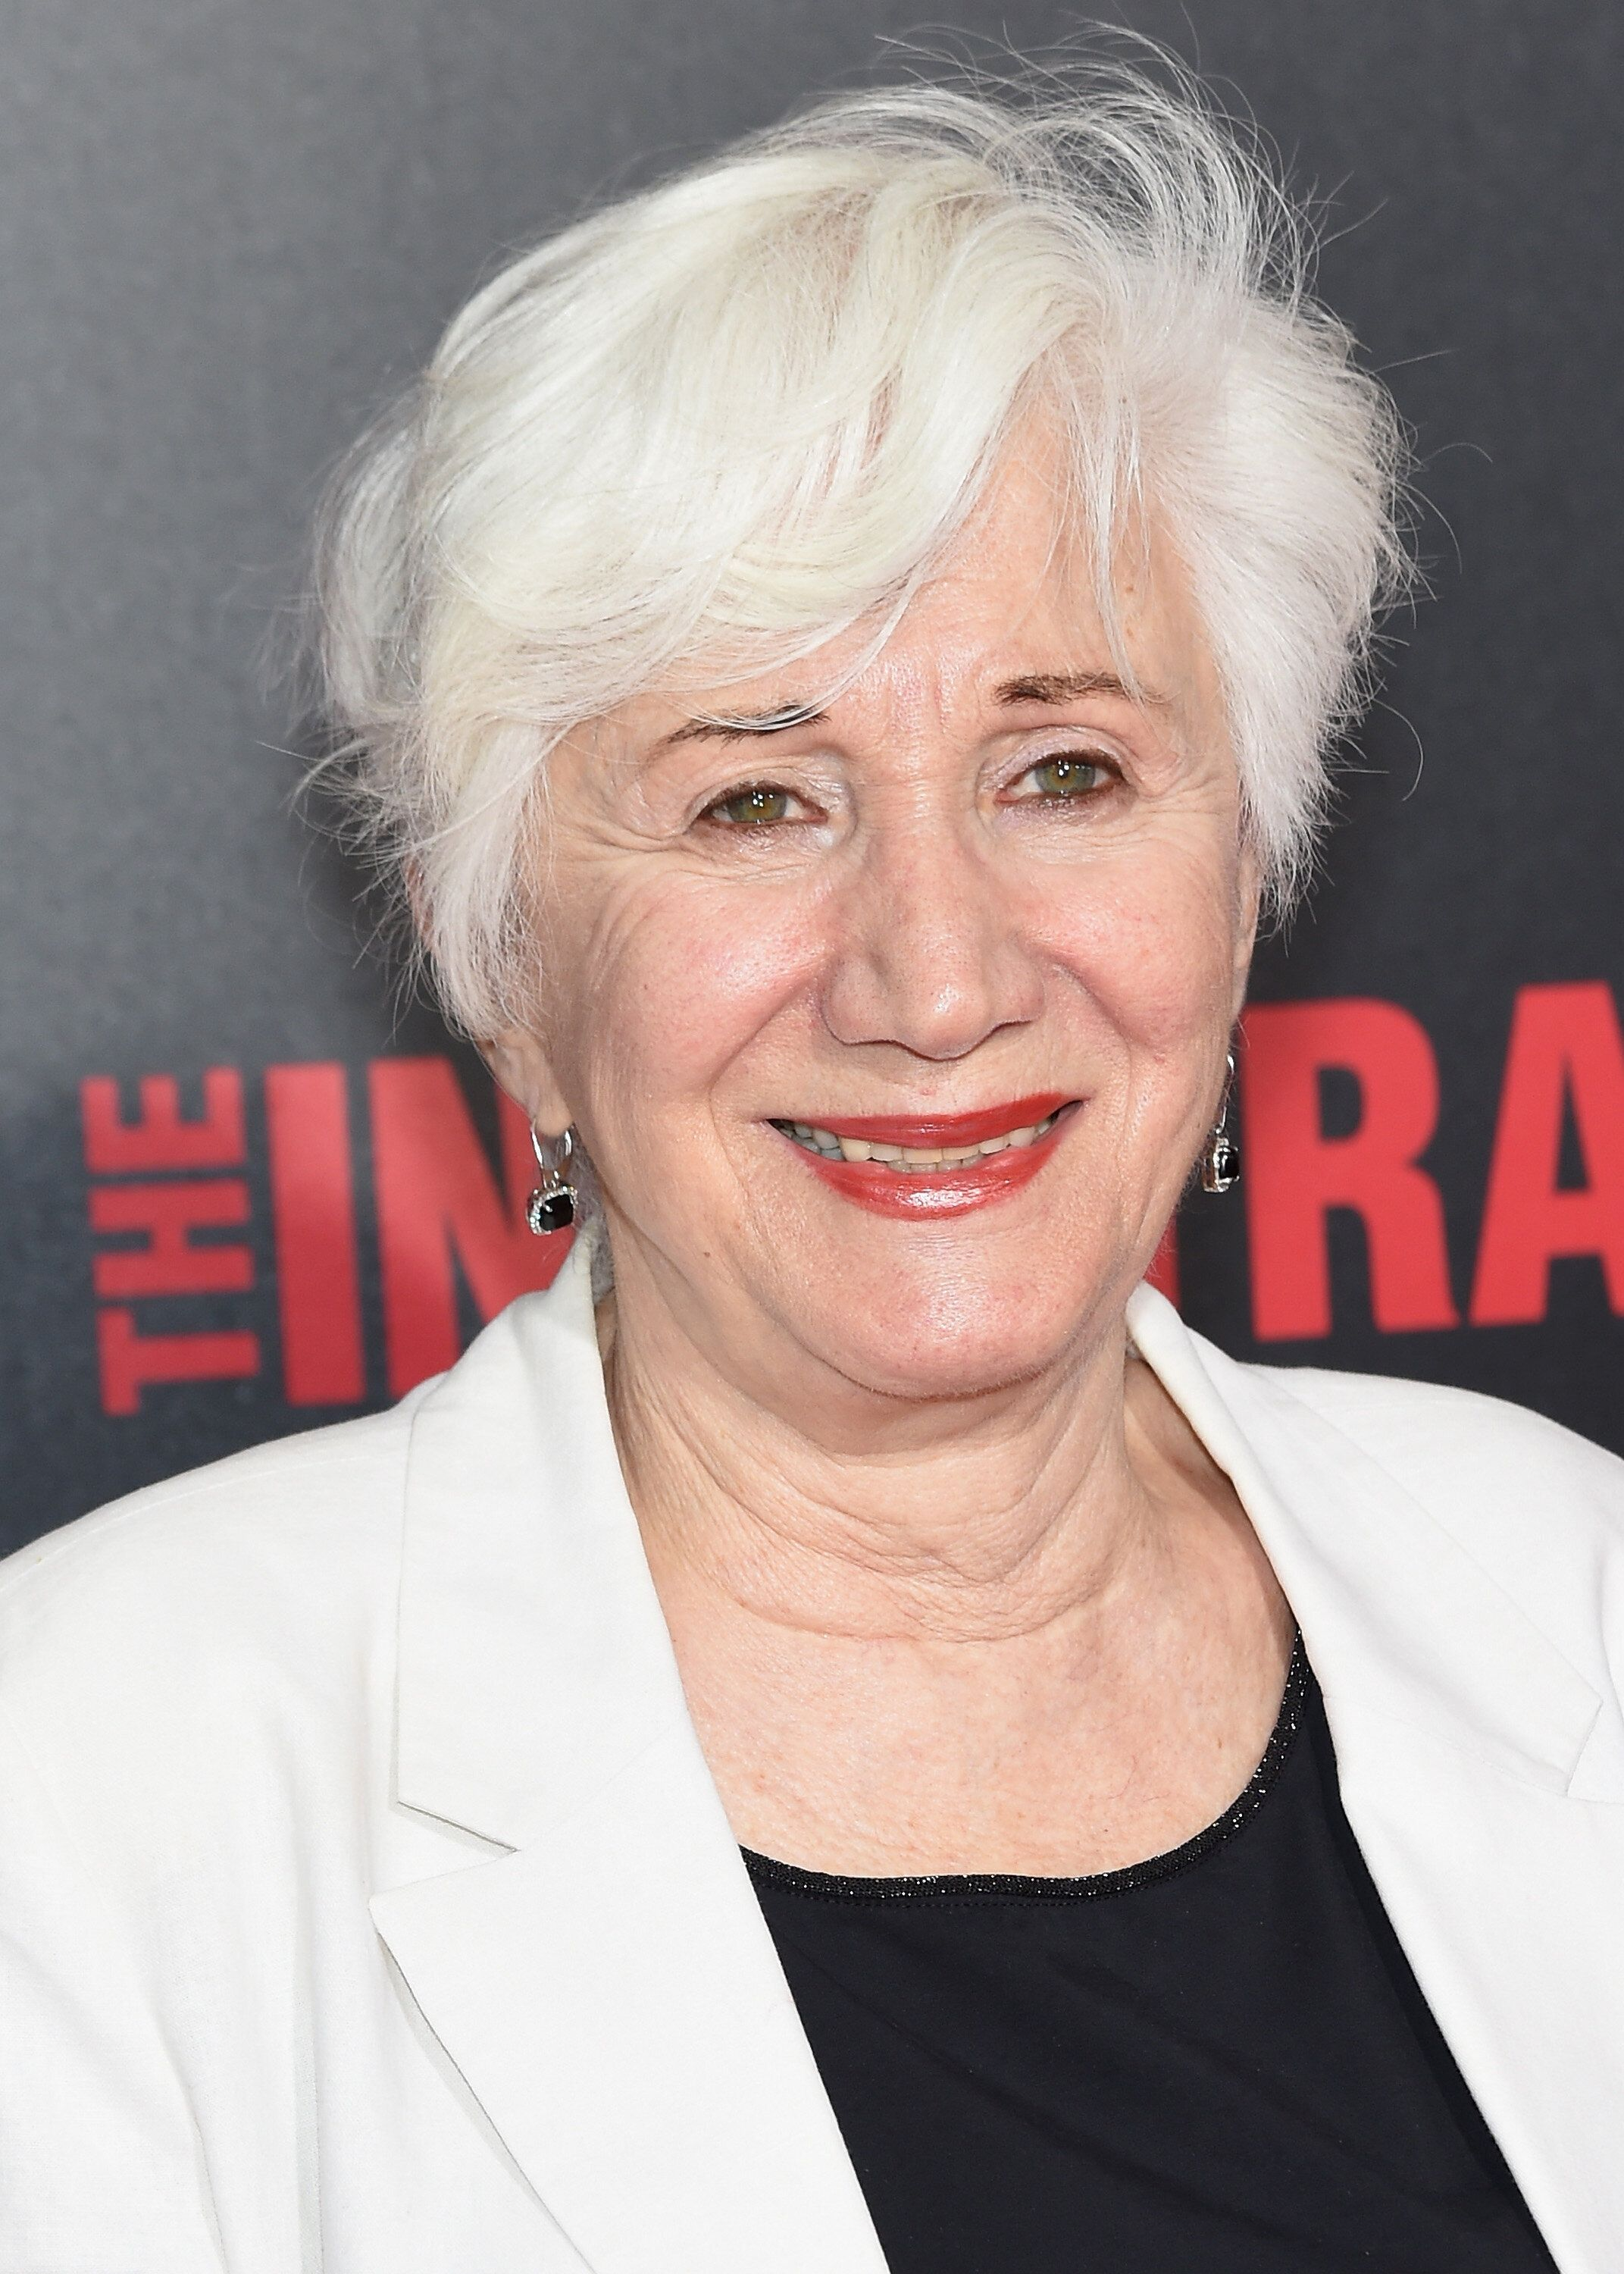 """Olympia Dukakis at the """"The Infiltrator"""" New York premiere in July 2016 in New York City. (Photo by Jamie McCarthy/Getty Imag"""